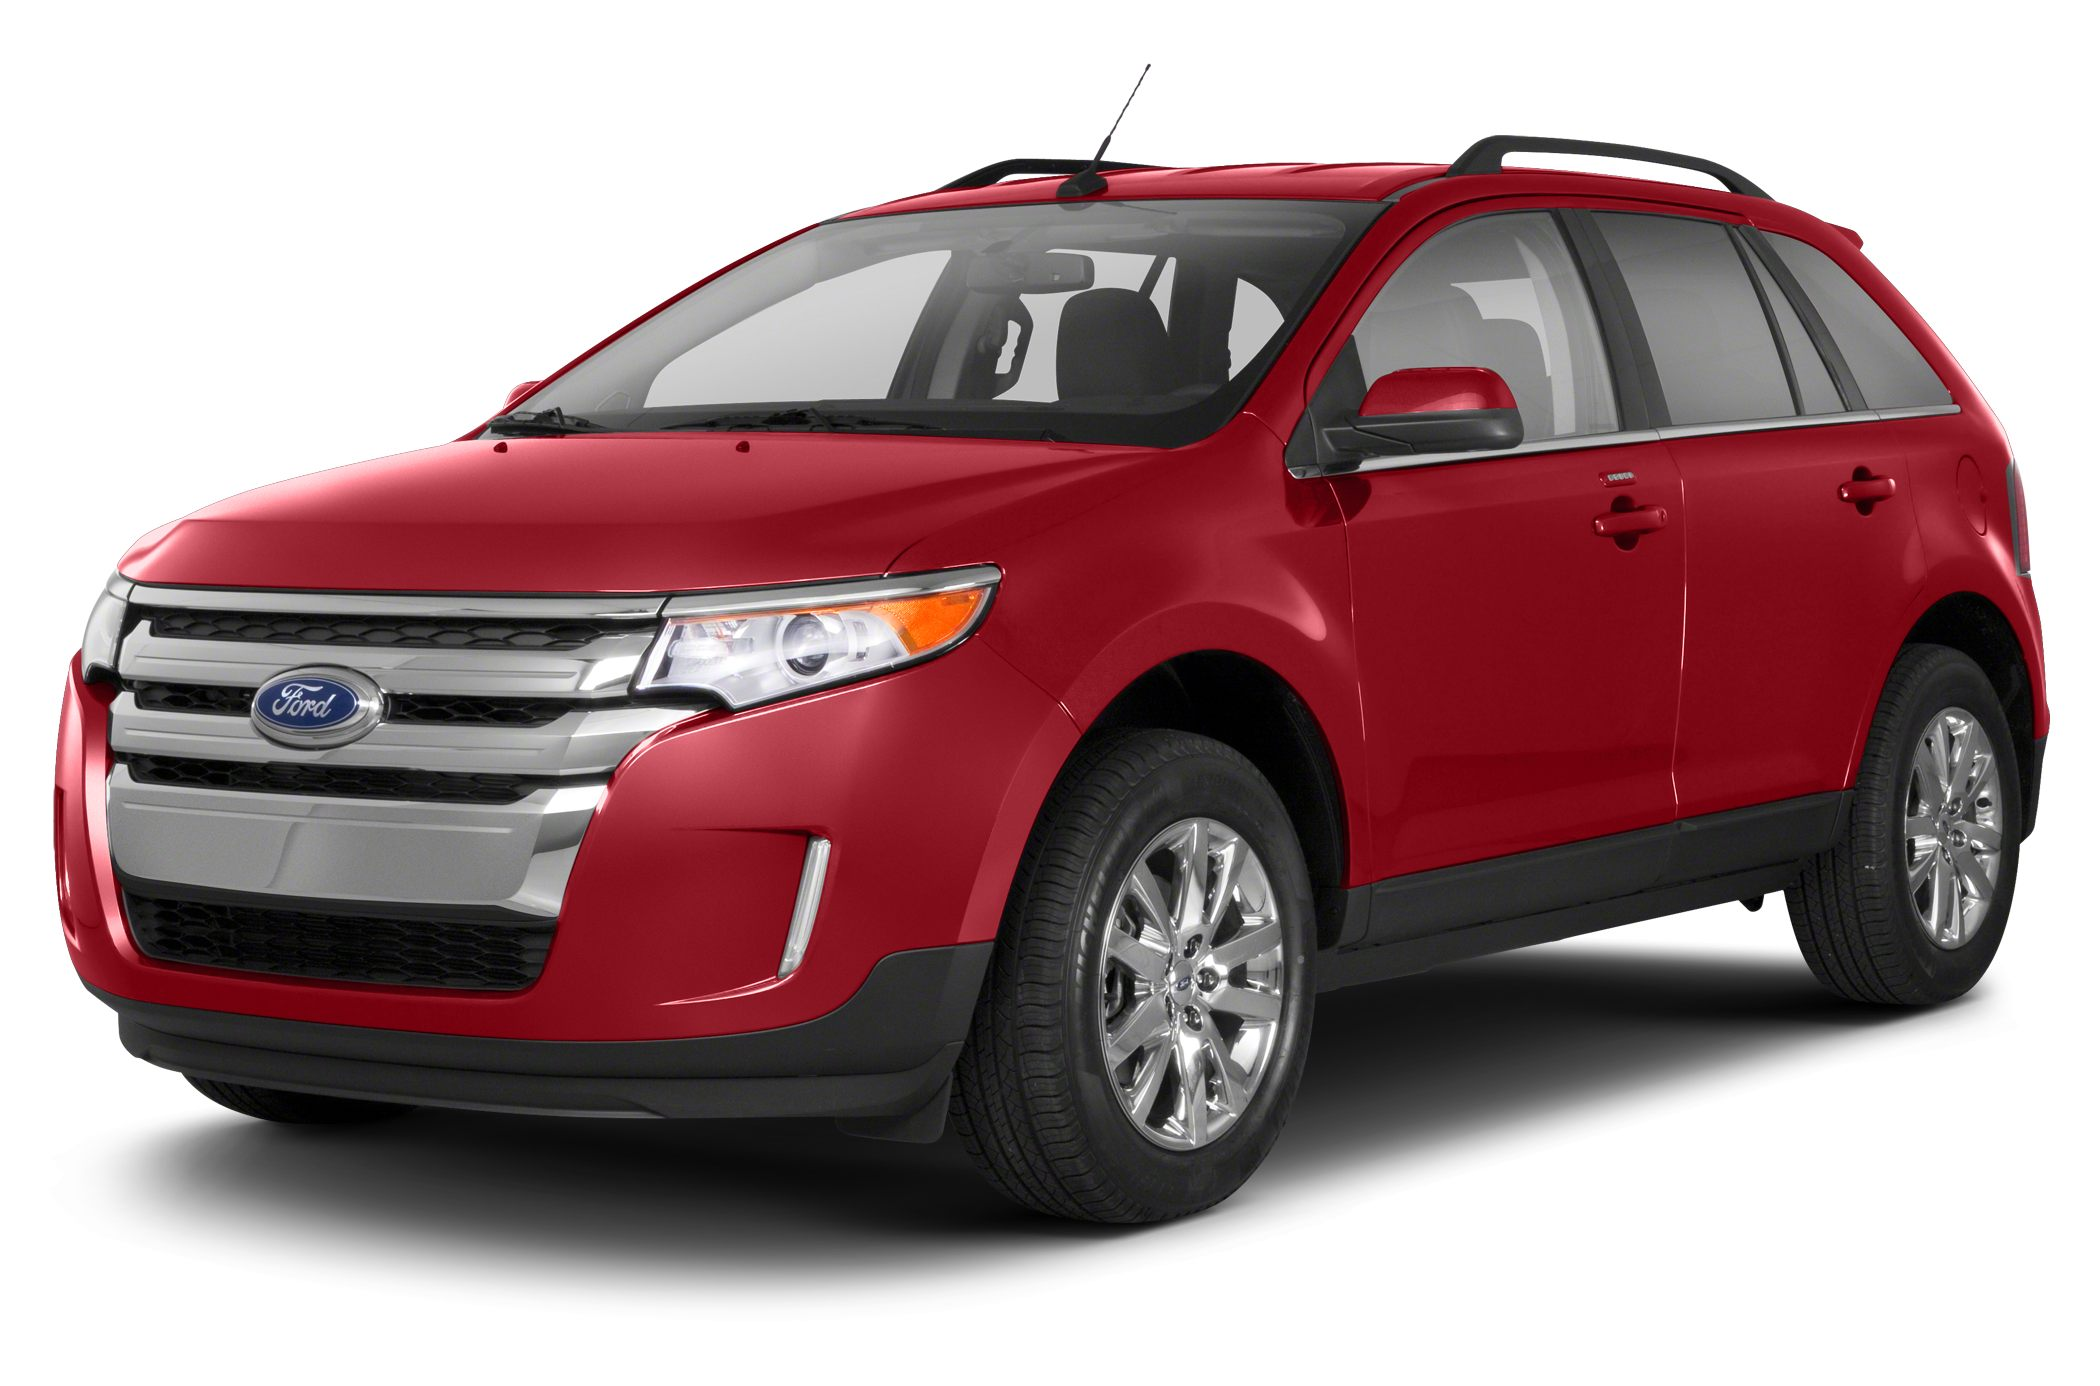 2013 Ford Edge Limited SUV for sale in Kingsport for $27,900 with 24,449 miles